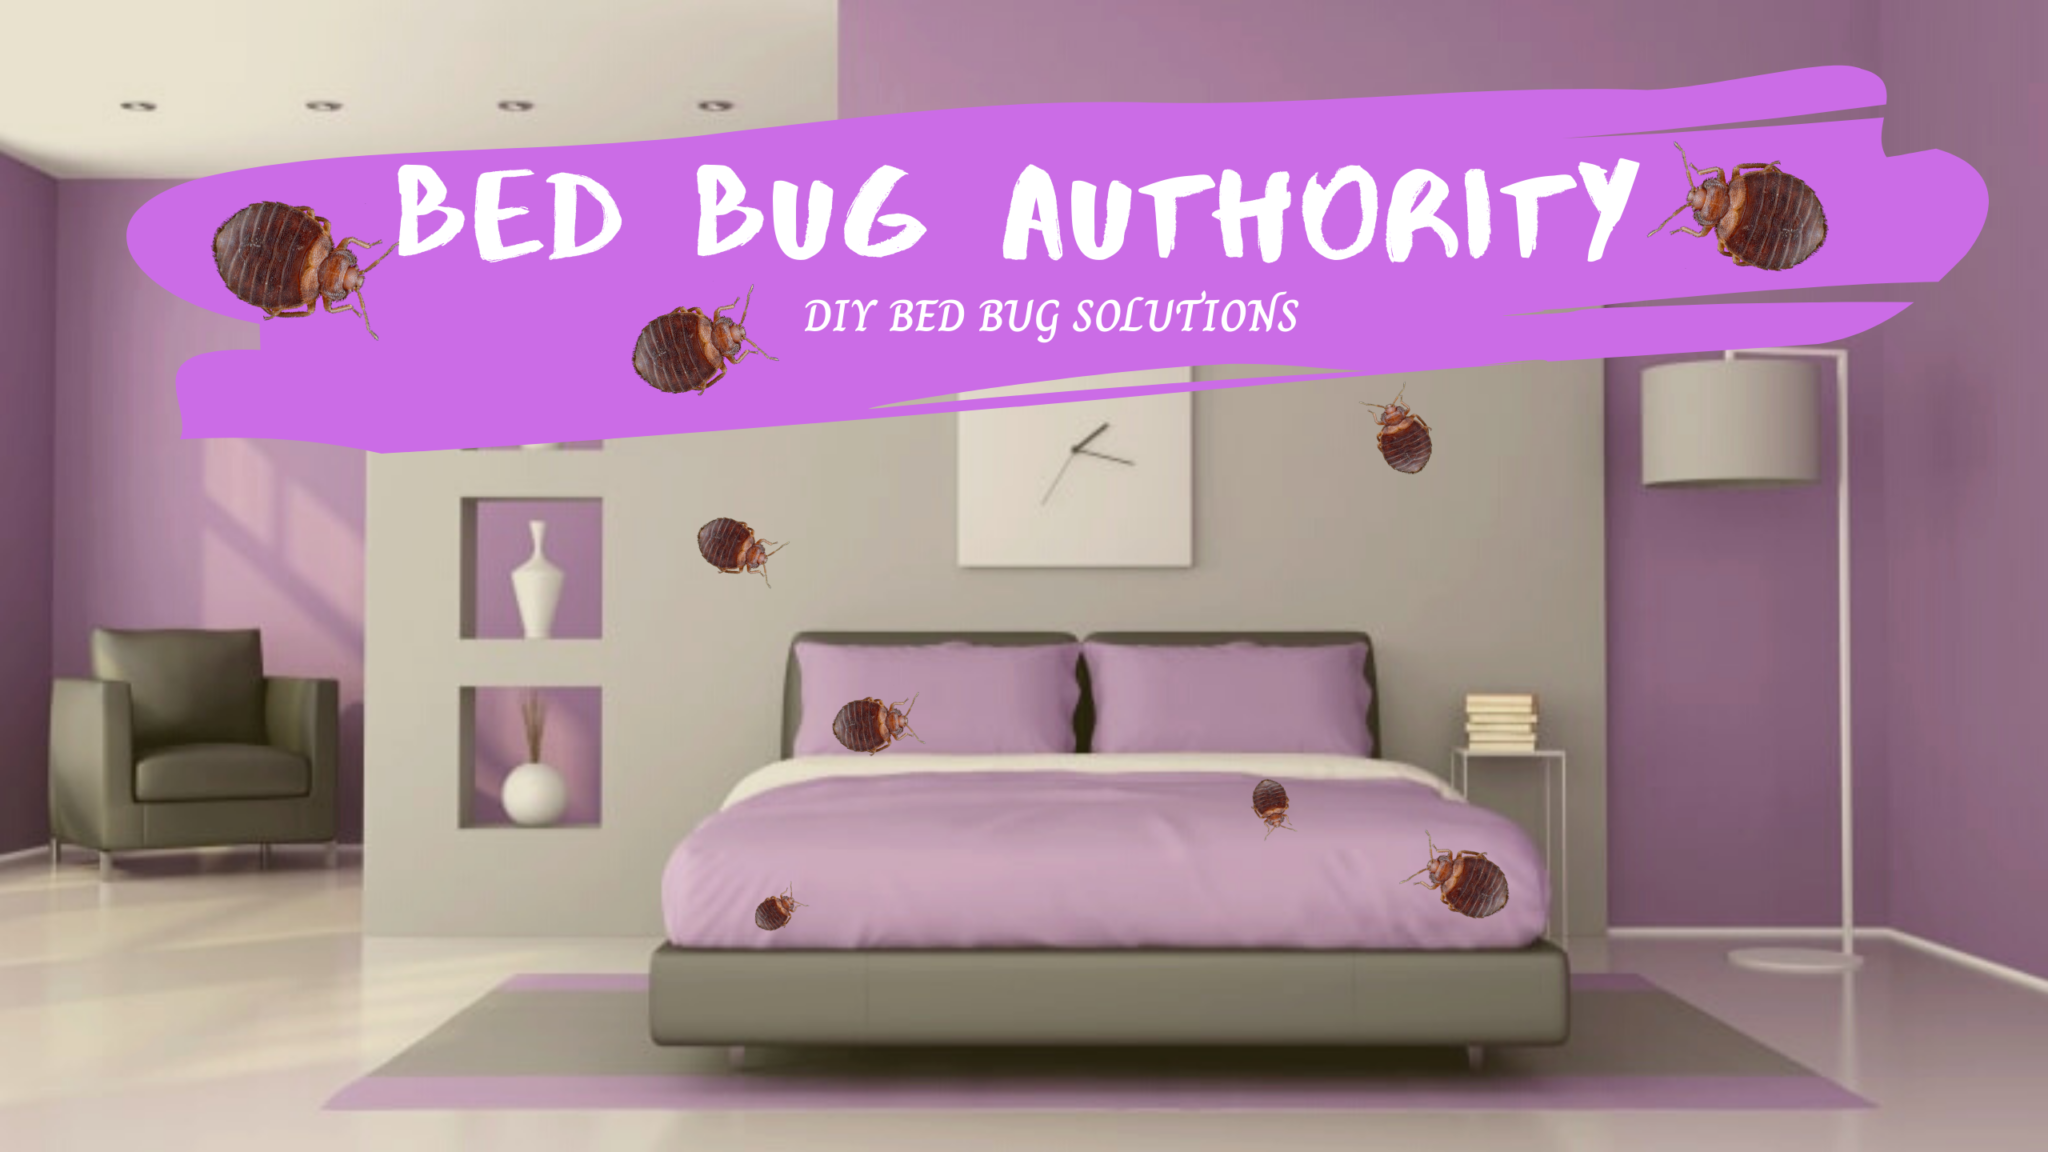 keeping bed bugs out of your home